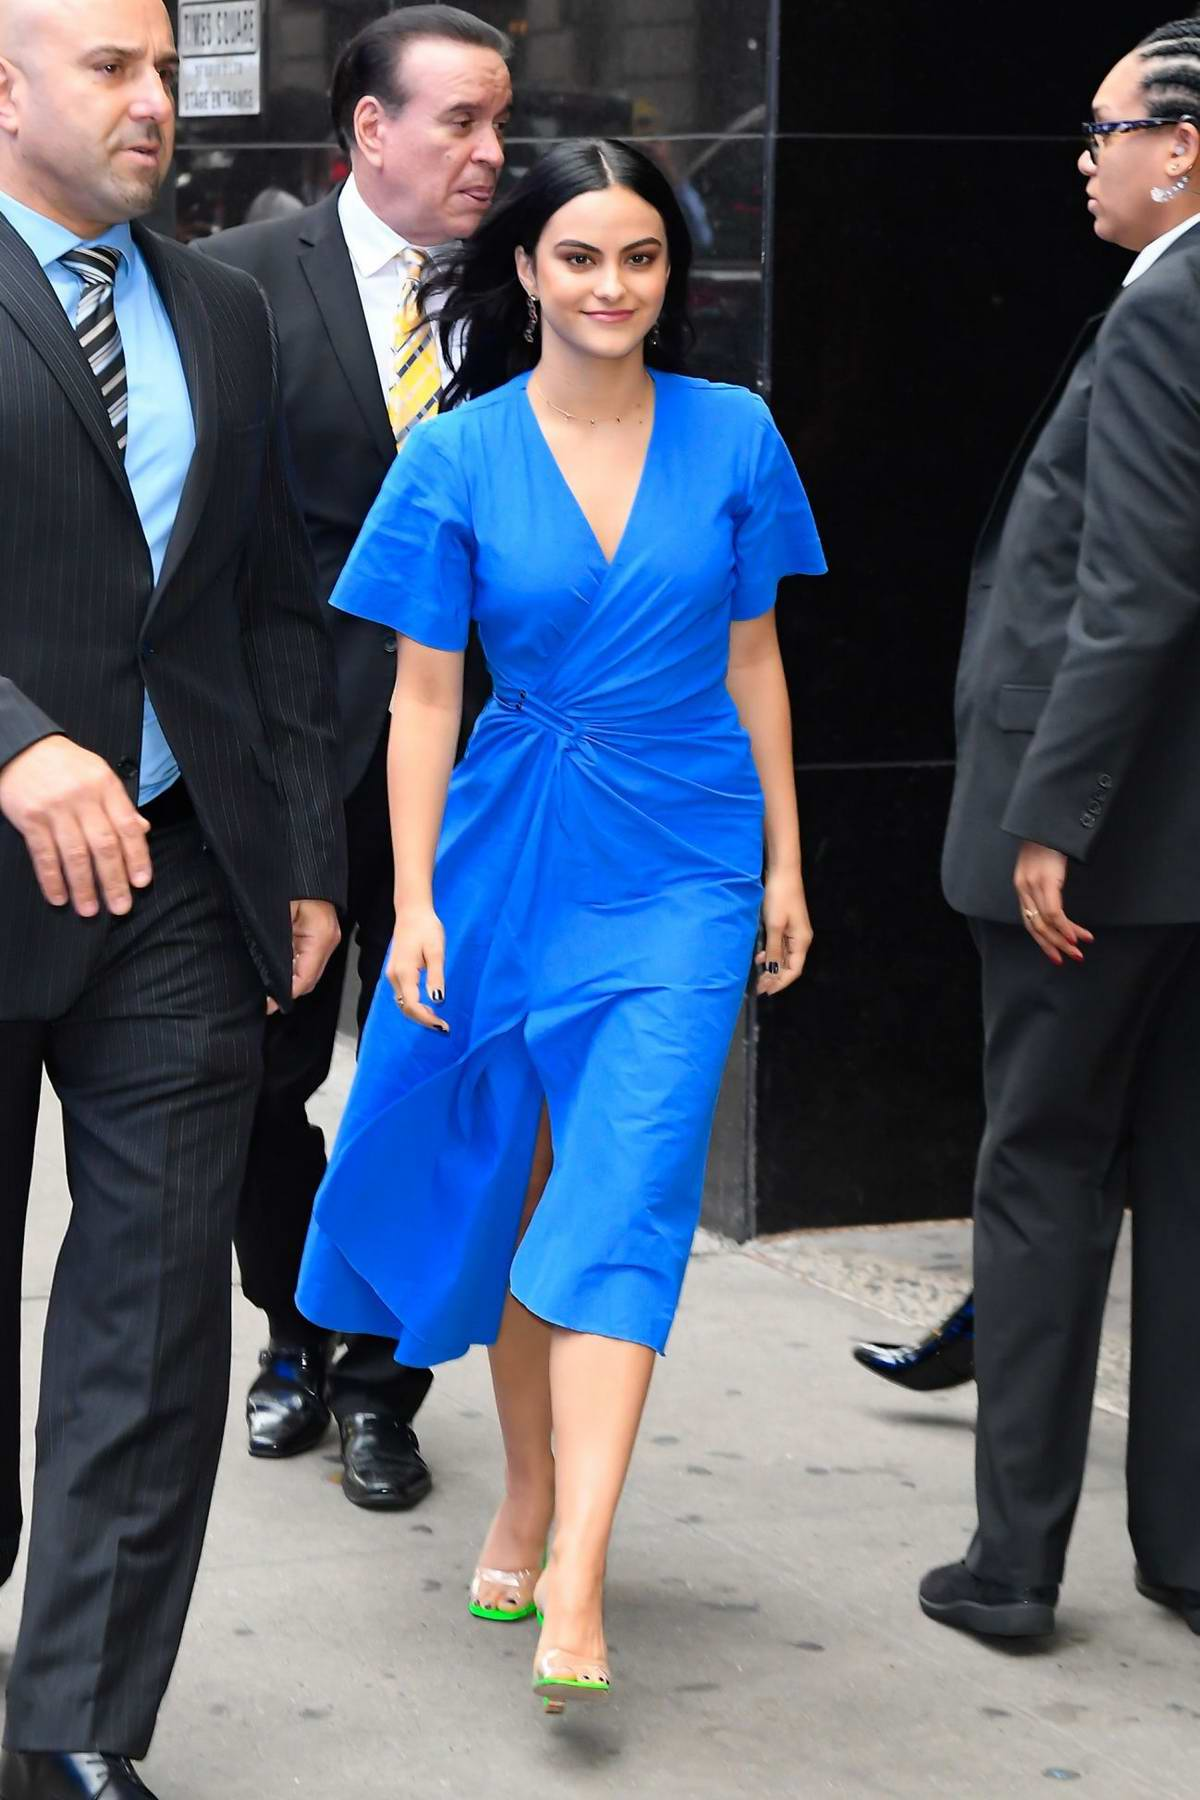 Camila Mendes looks great in a blue dress while visiting Good Morning America in New York City